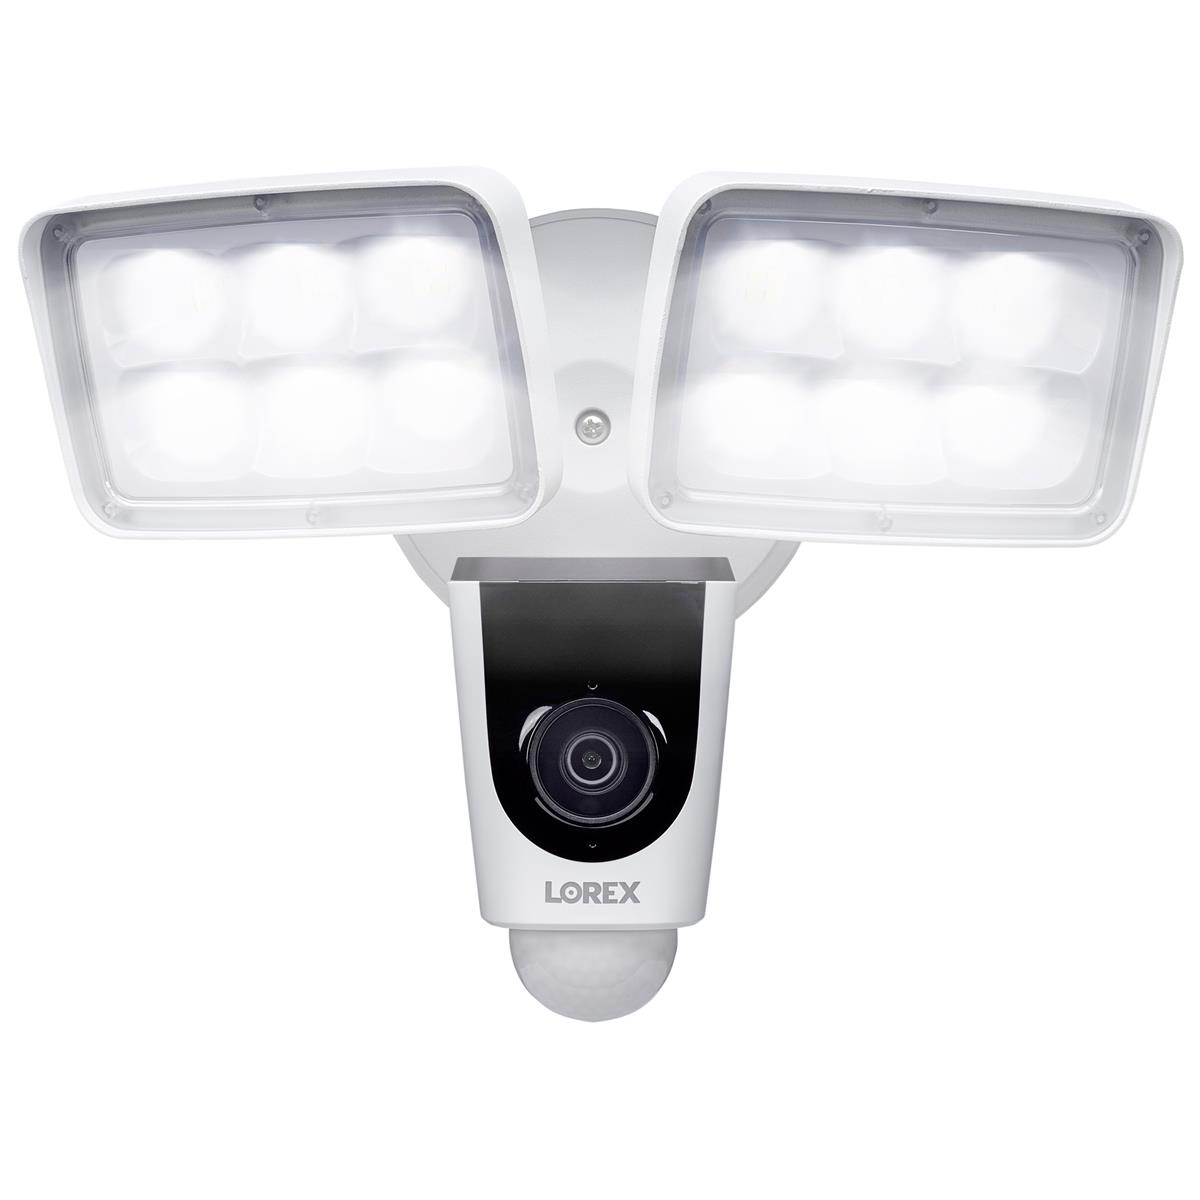 Lorex V261LCD-E 2MP 1080p 2-Way Audio Indoor/Outdoor Wi-Fi Floodlight Camera